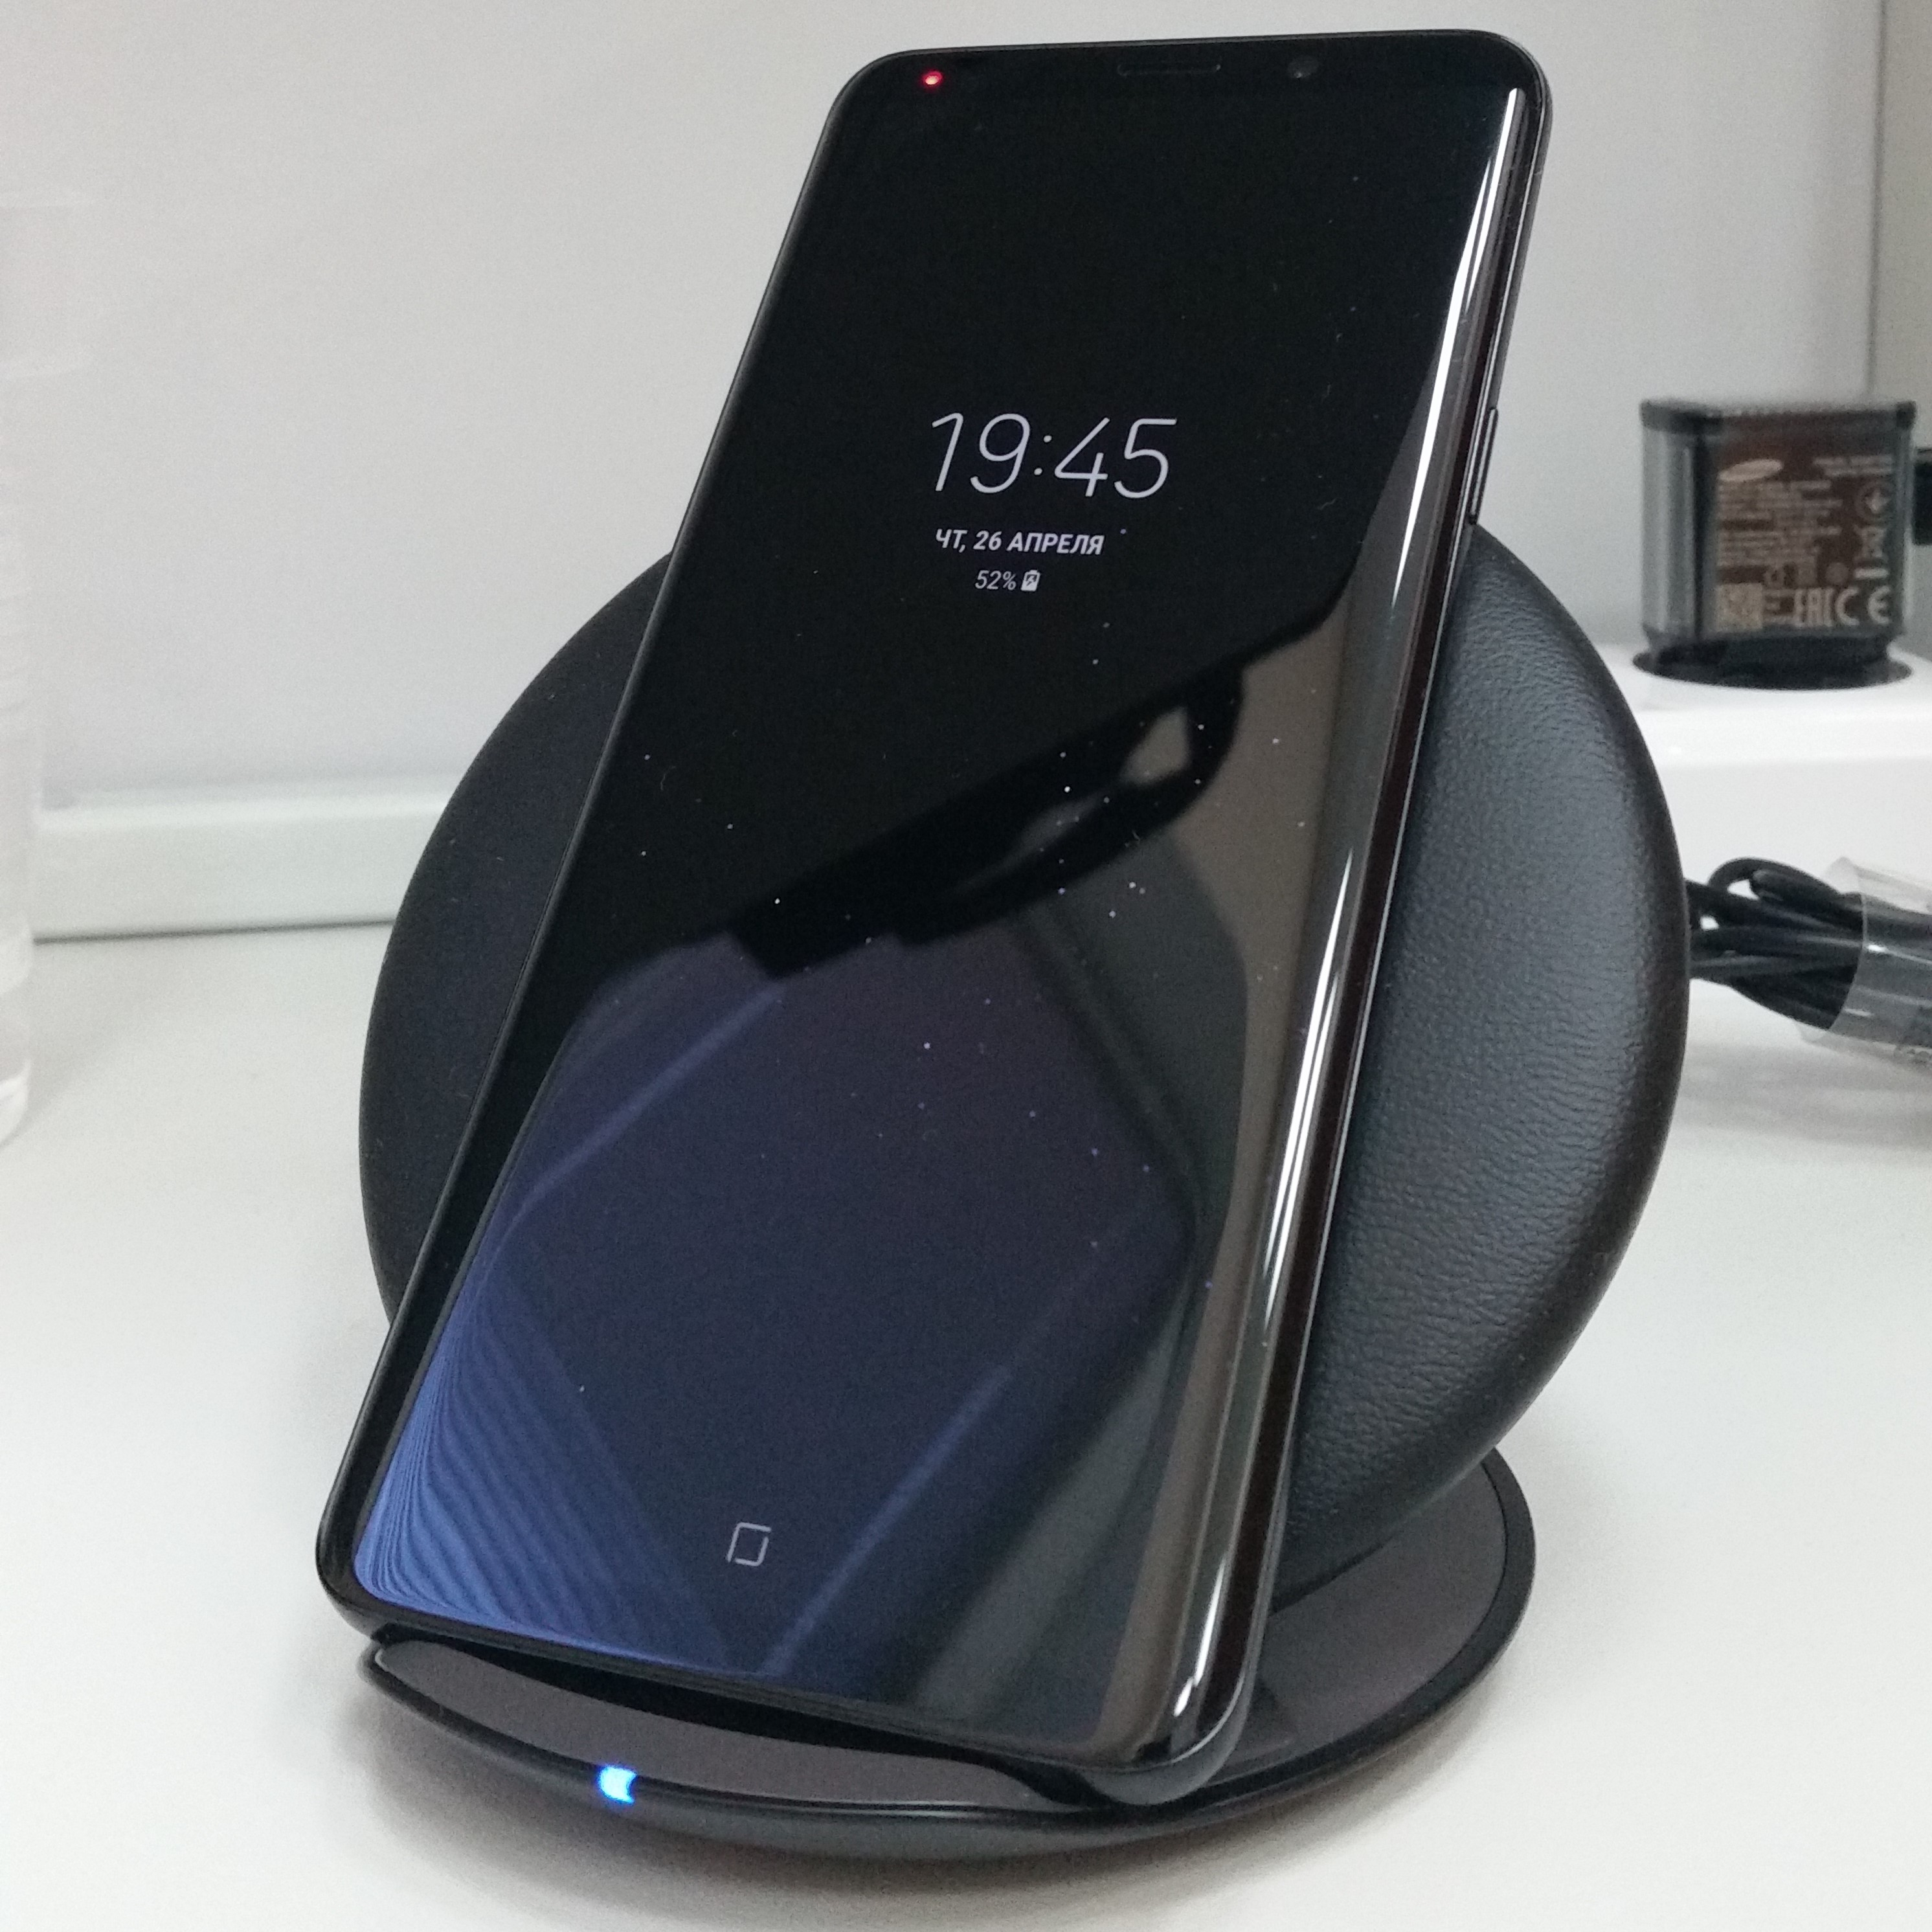 File:Samsung Galaxy S9+ standby mode, charging, cropped.jpg